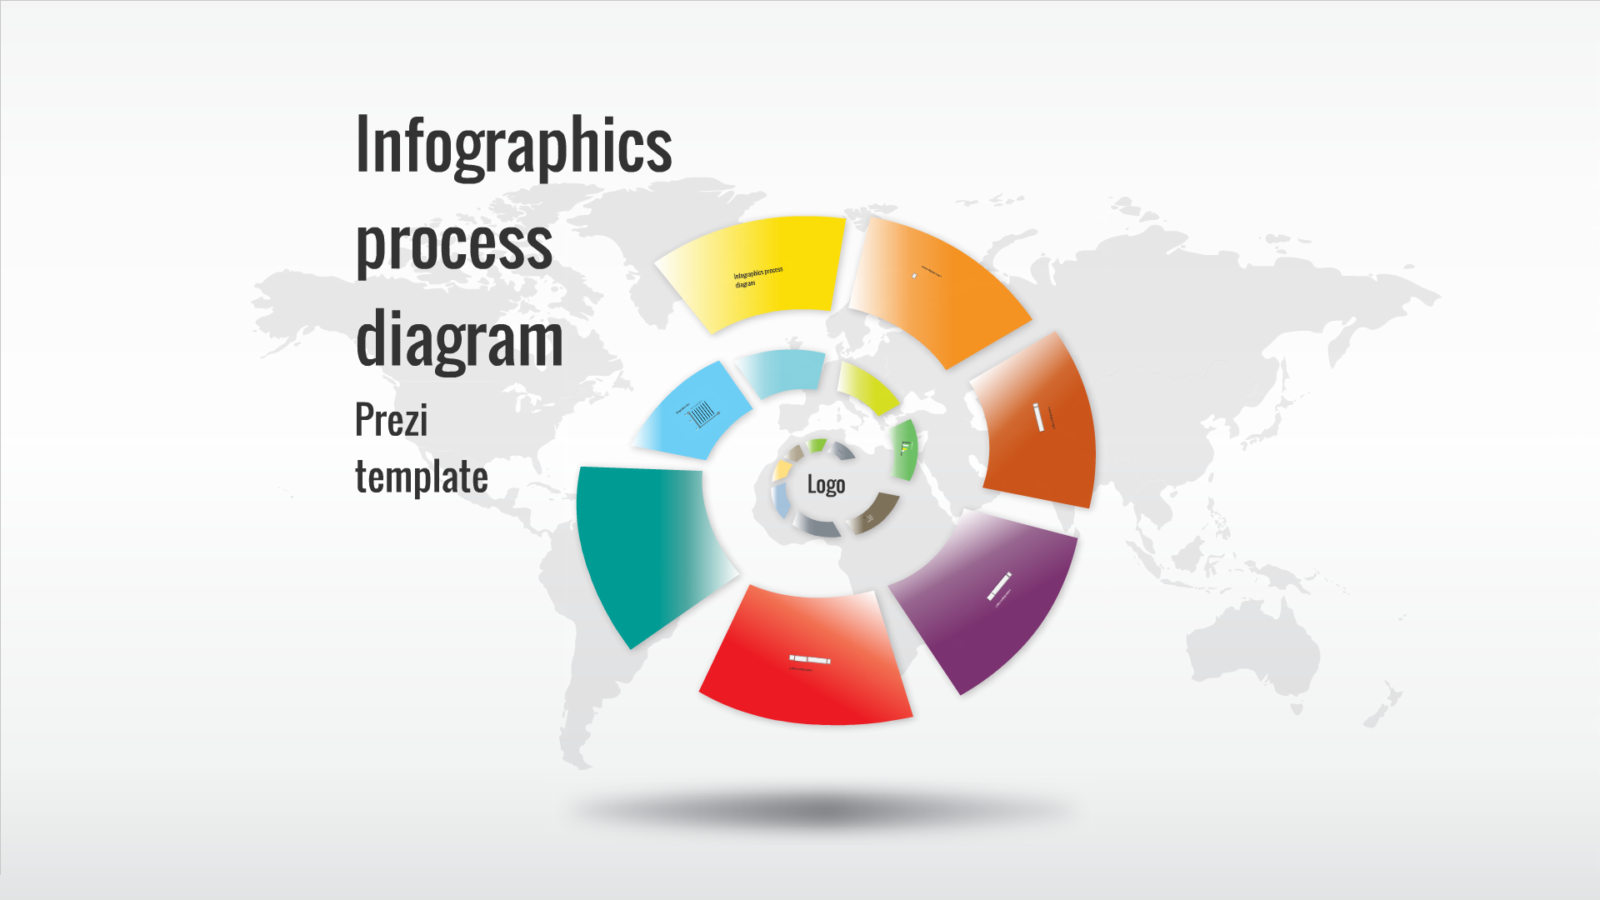 presi templates - infographics process diagram prezi template preziland